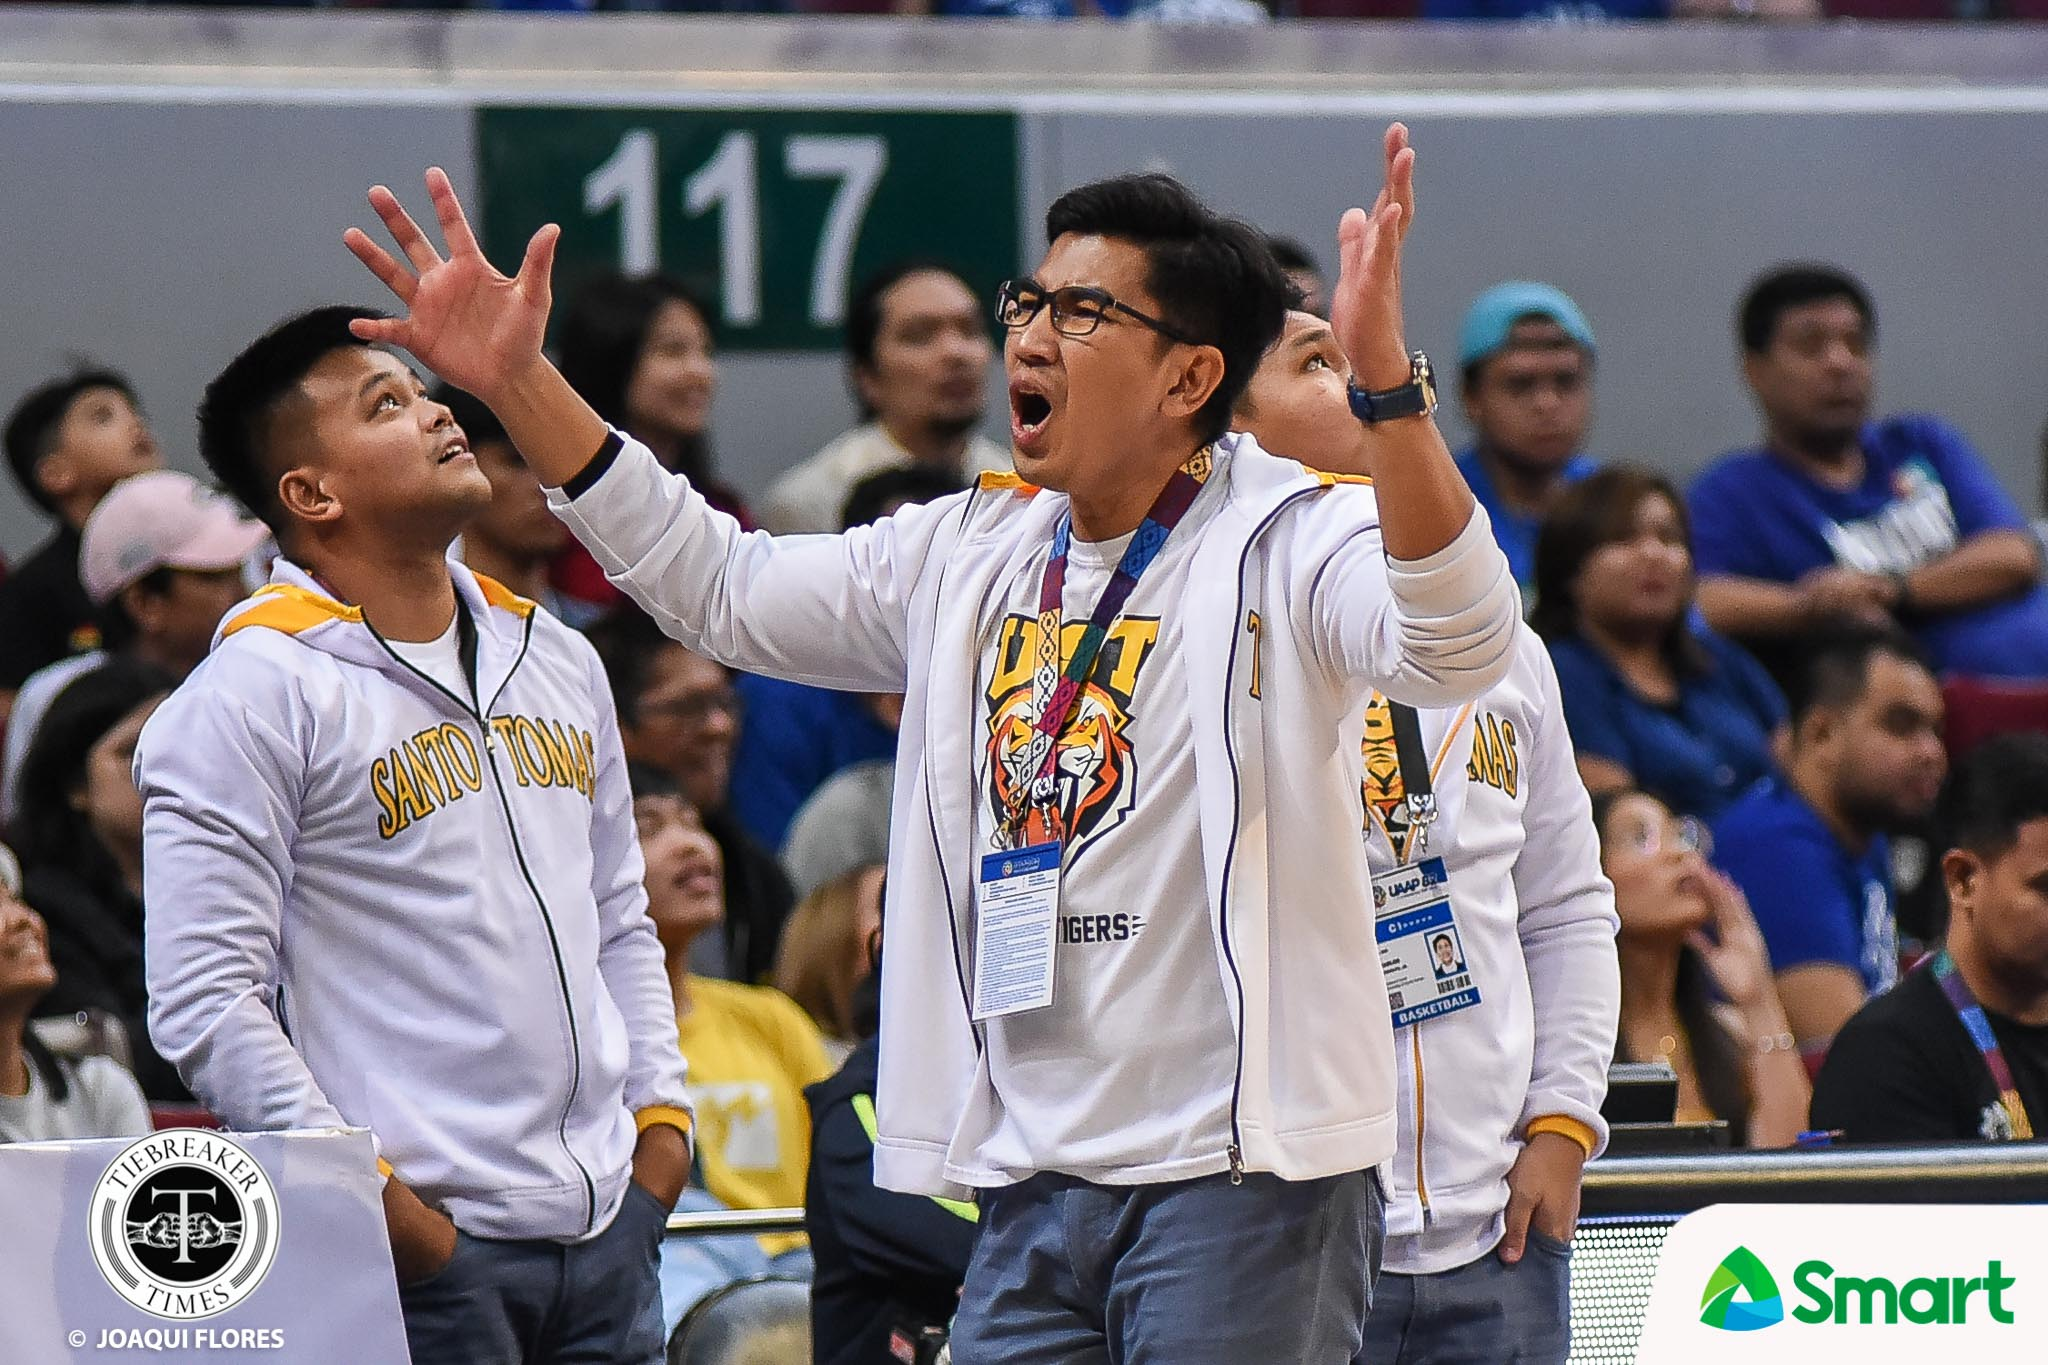 Tiebreaker Times SOURCES: Aldin Ayo's UAAP ban will stand despite PNP conclusion Basketball News UAAP UST  UST Men's Basketball UAAP Season 83 Men's Basketball UAAP Season 83 Coronavirus Pandemic Aldin Ayo